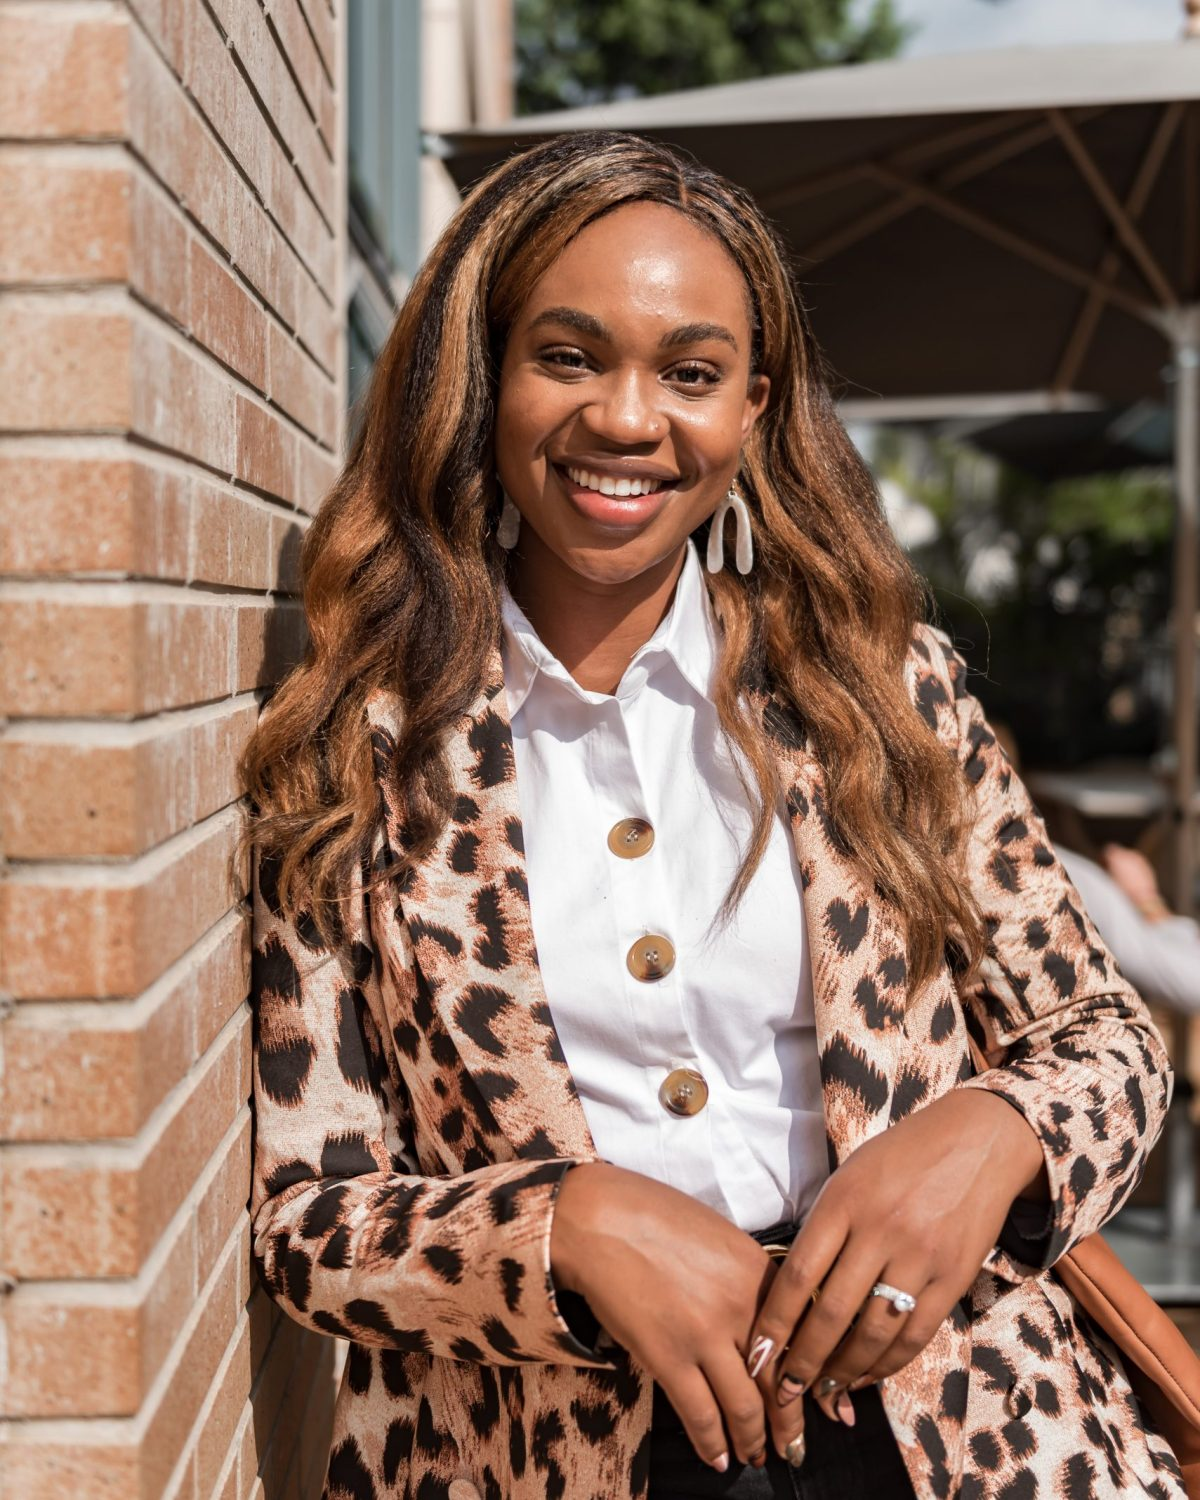 Ijeoma Kola in white shirt and animal print blazer - How to Grow Business